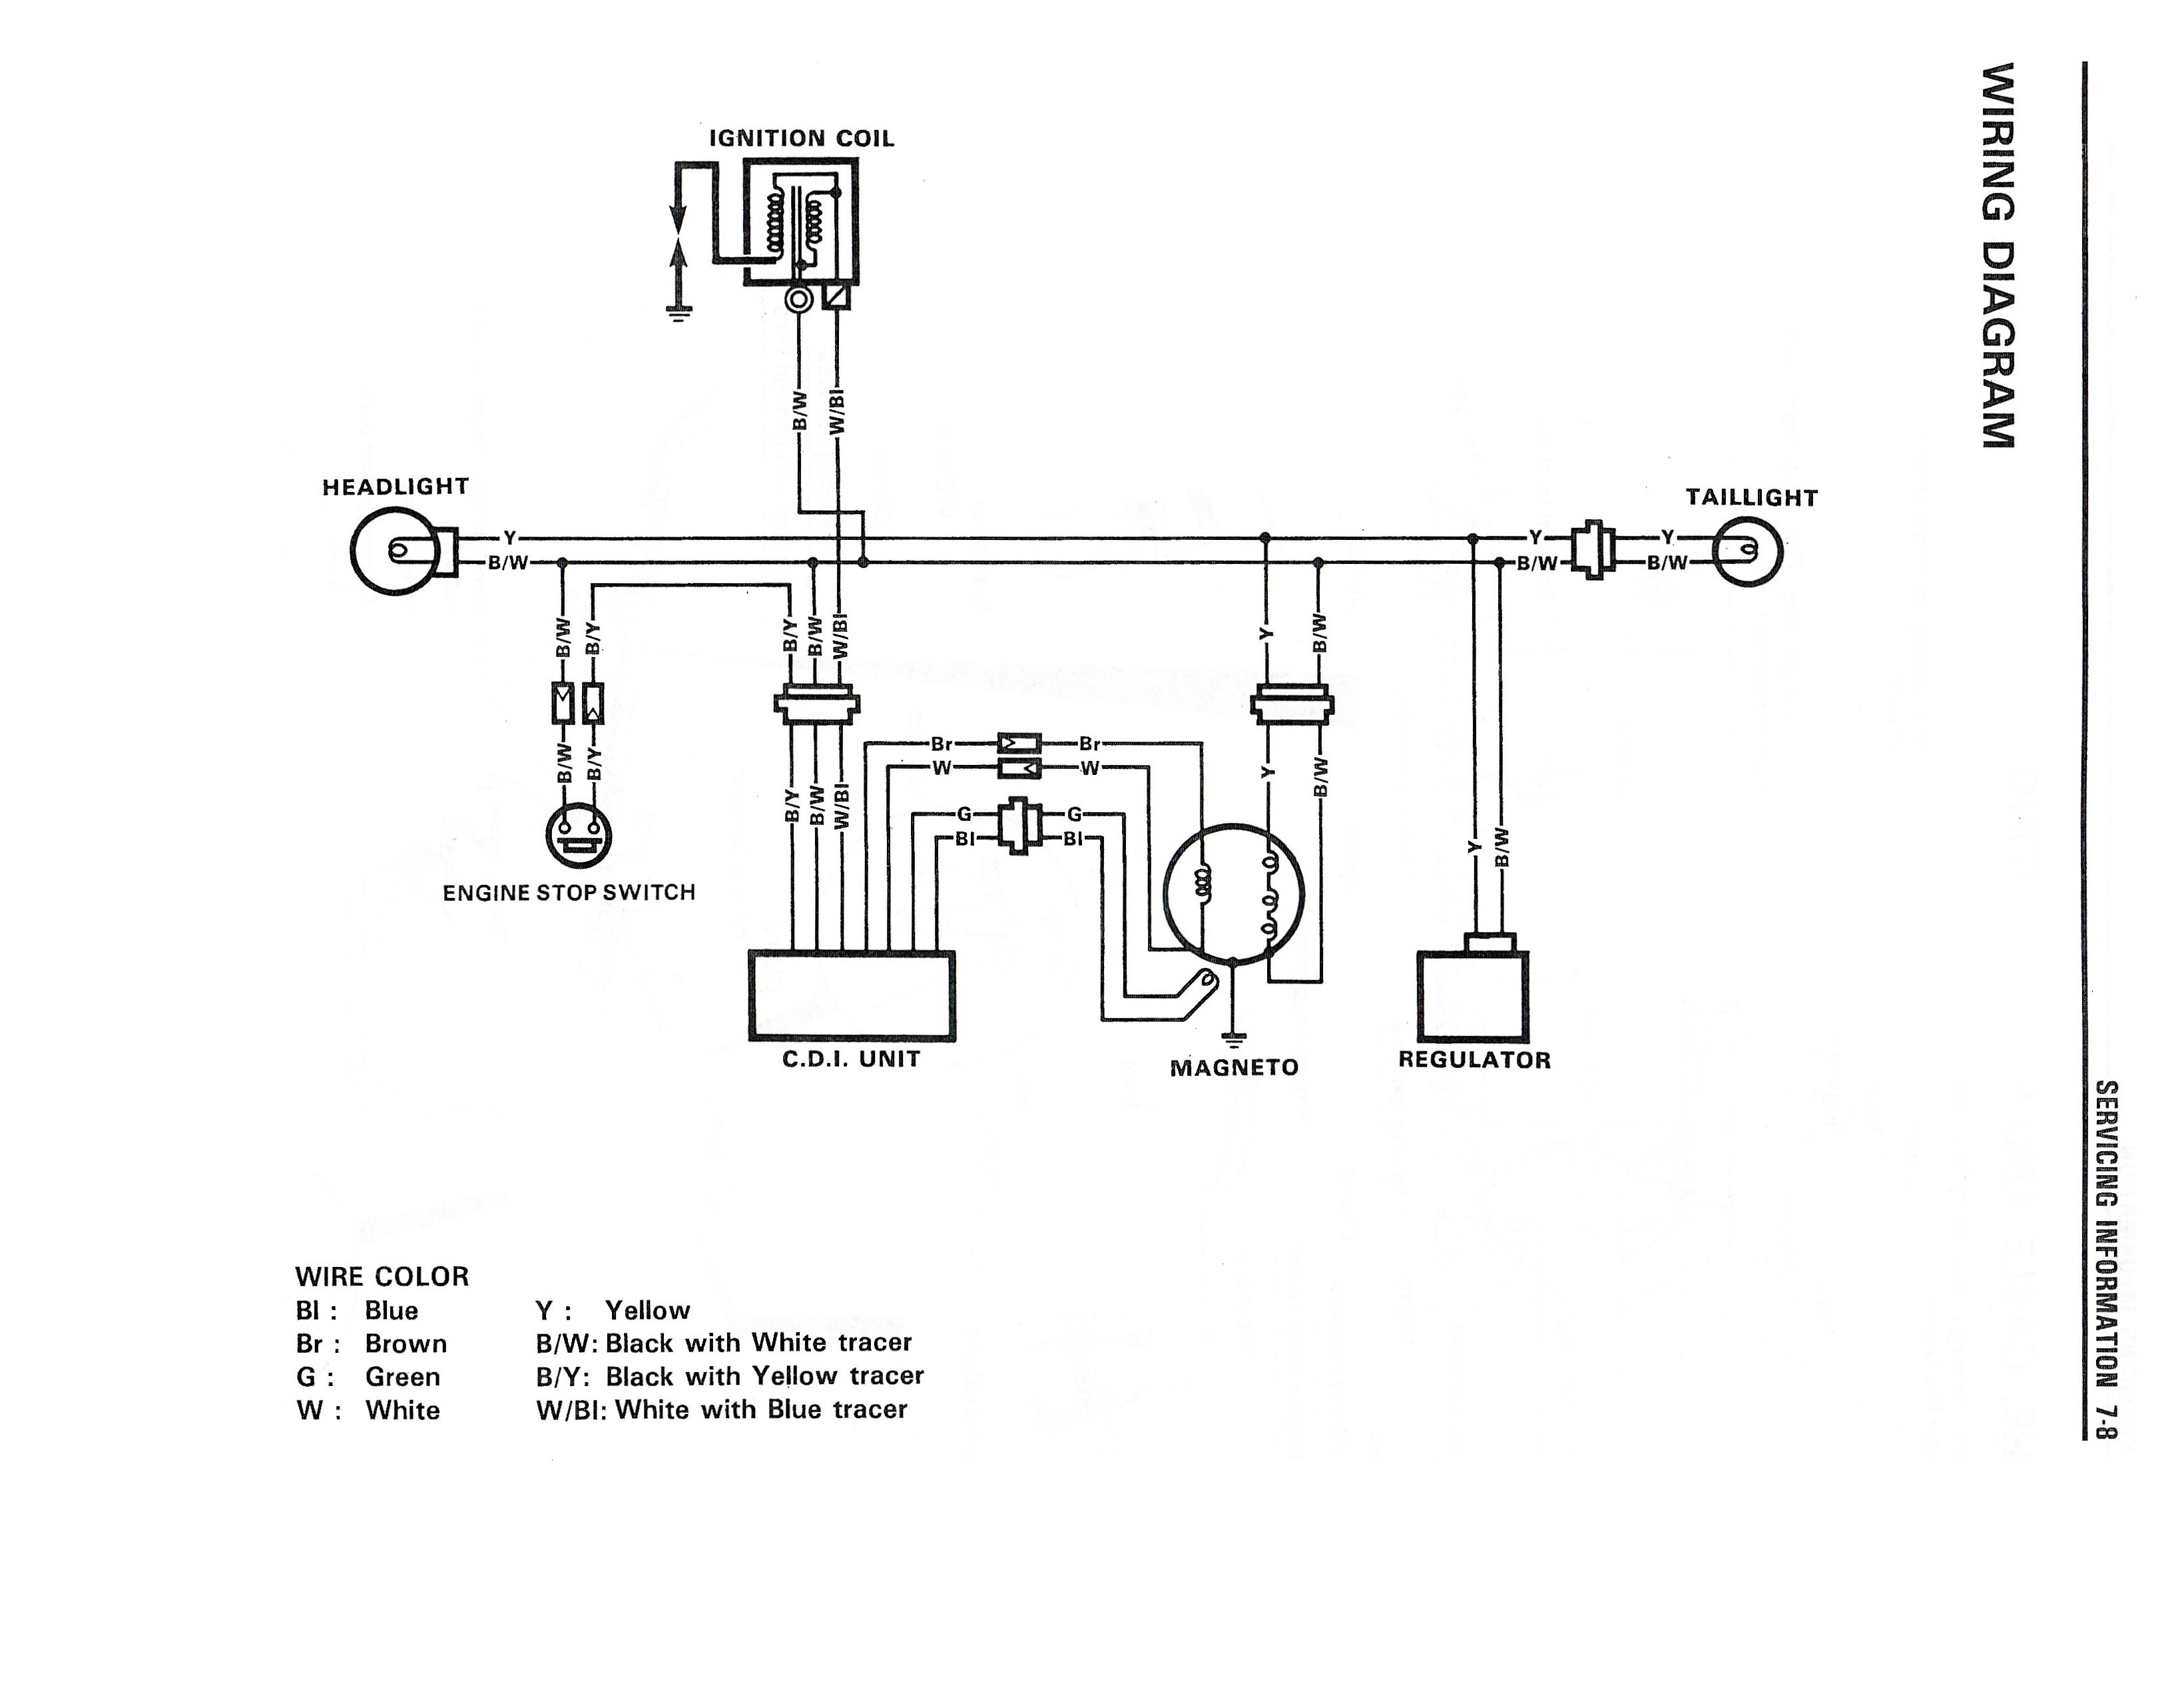 Wiring diagram for the DR350 (1990 and later models)